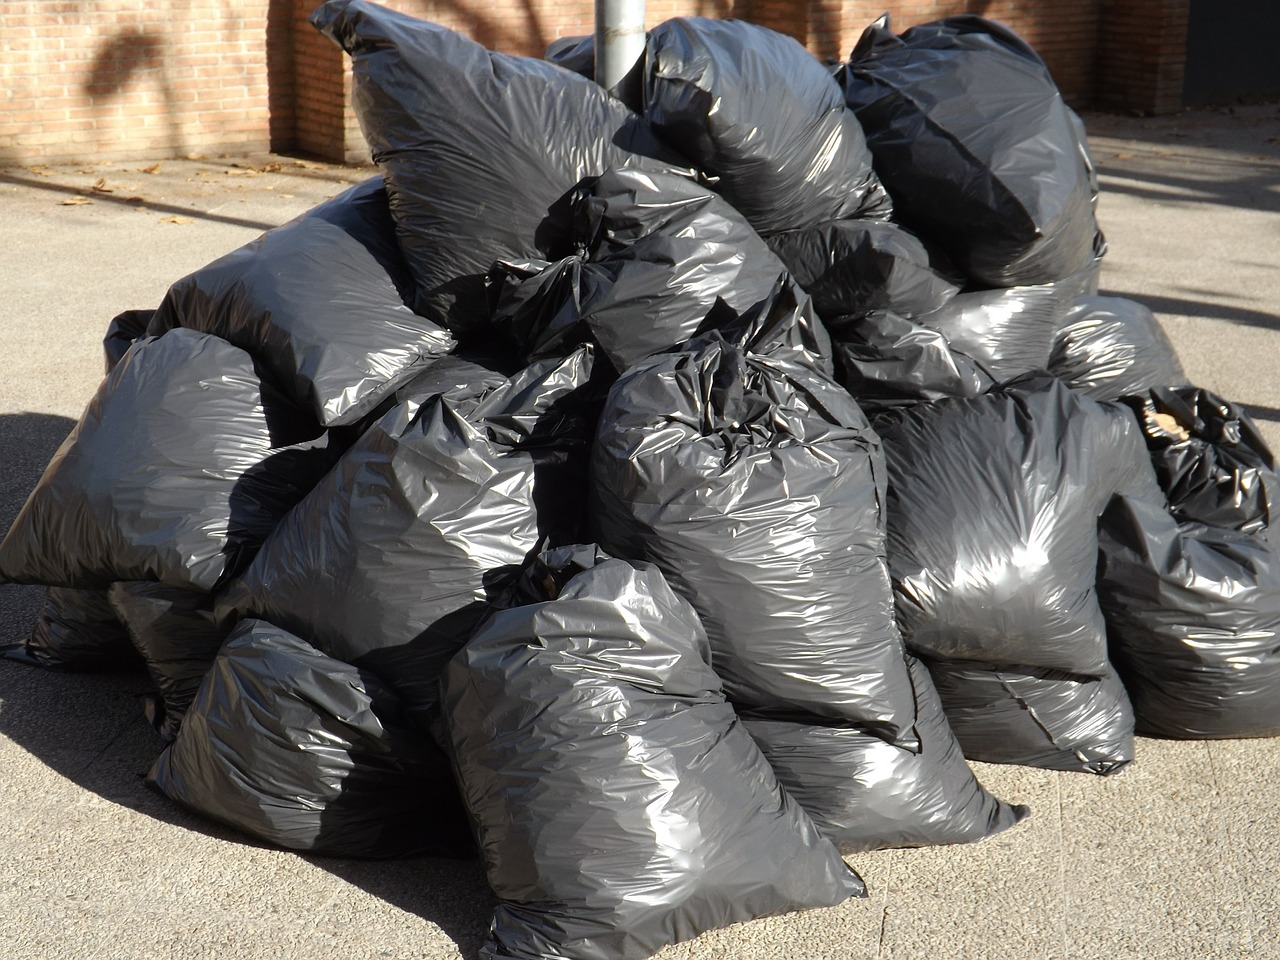 A pile of full, black garbage bags tied up.